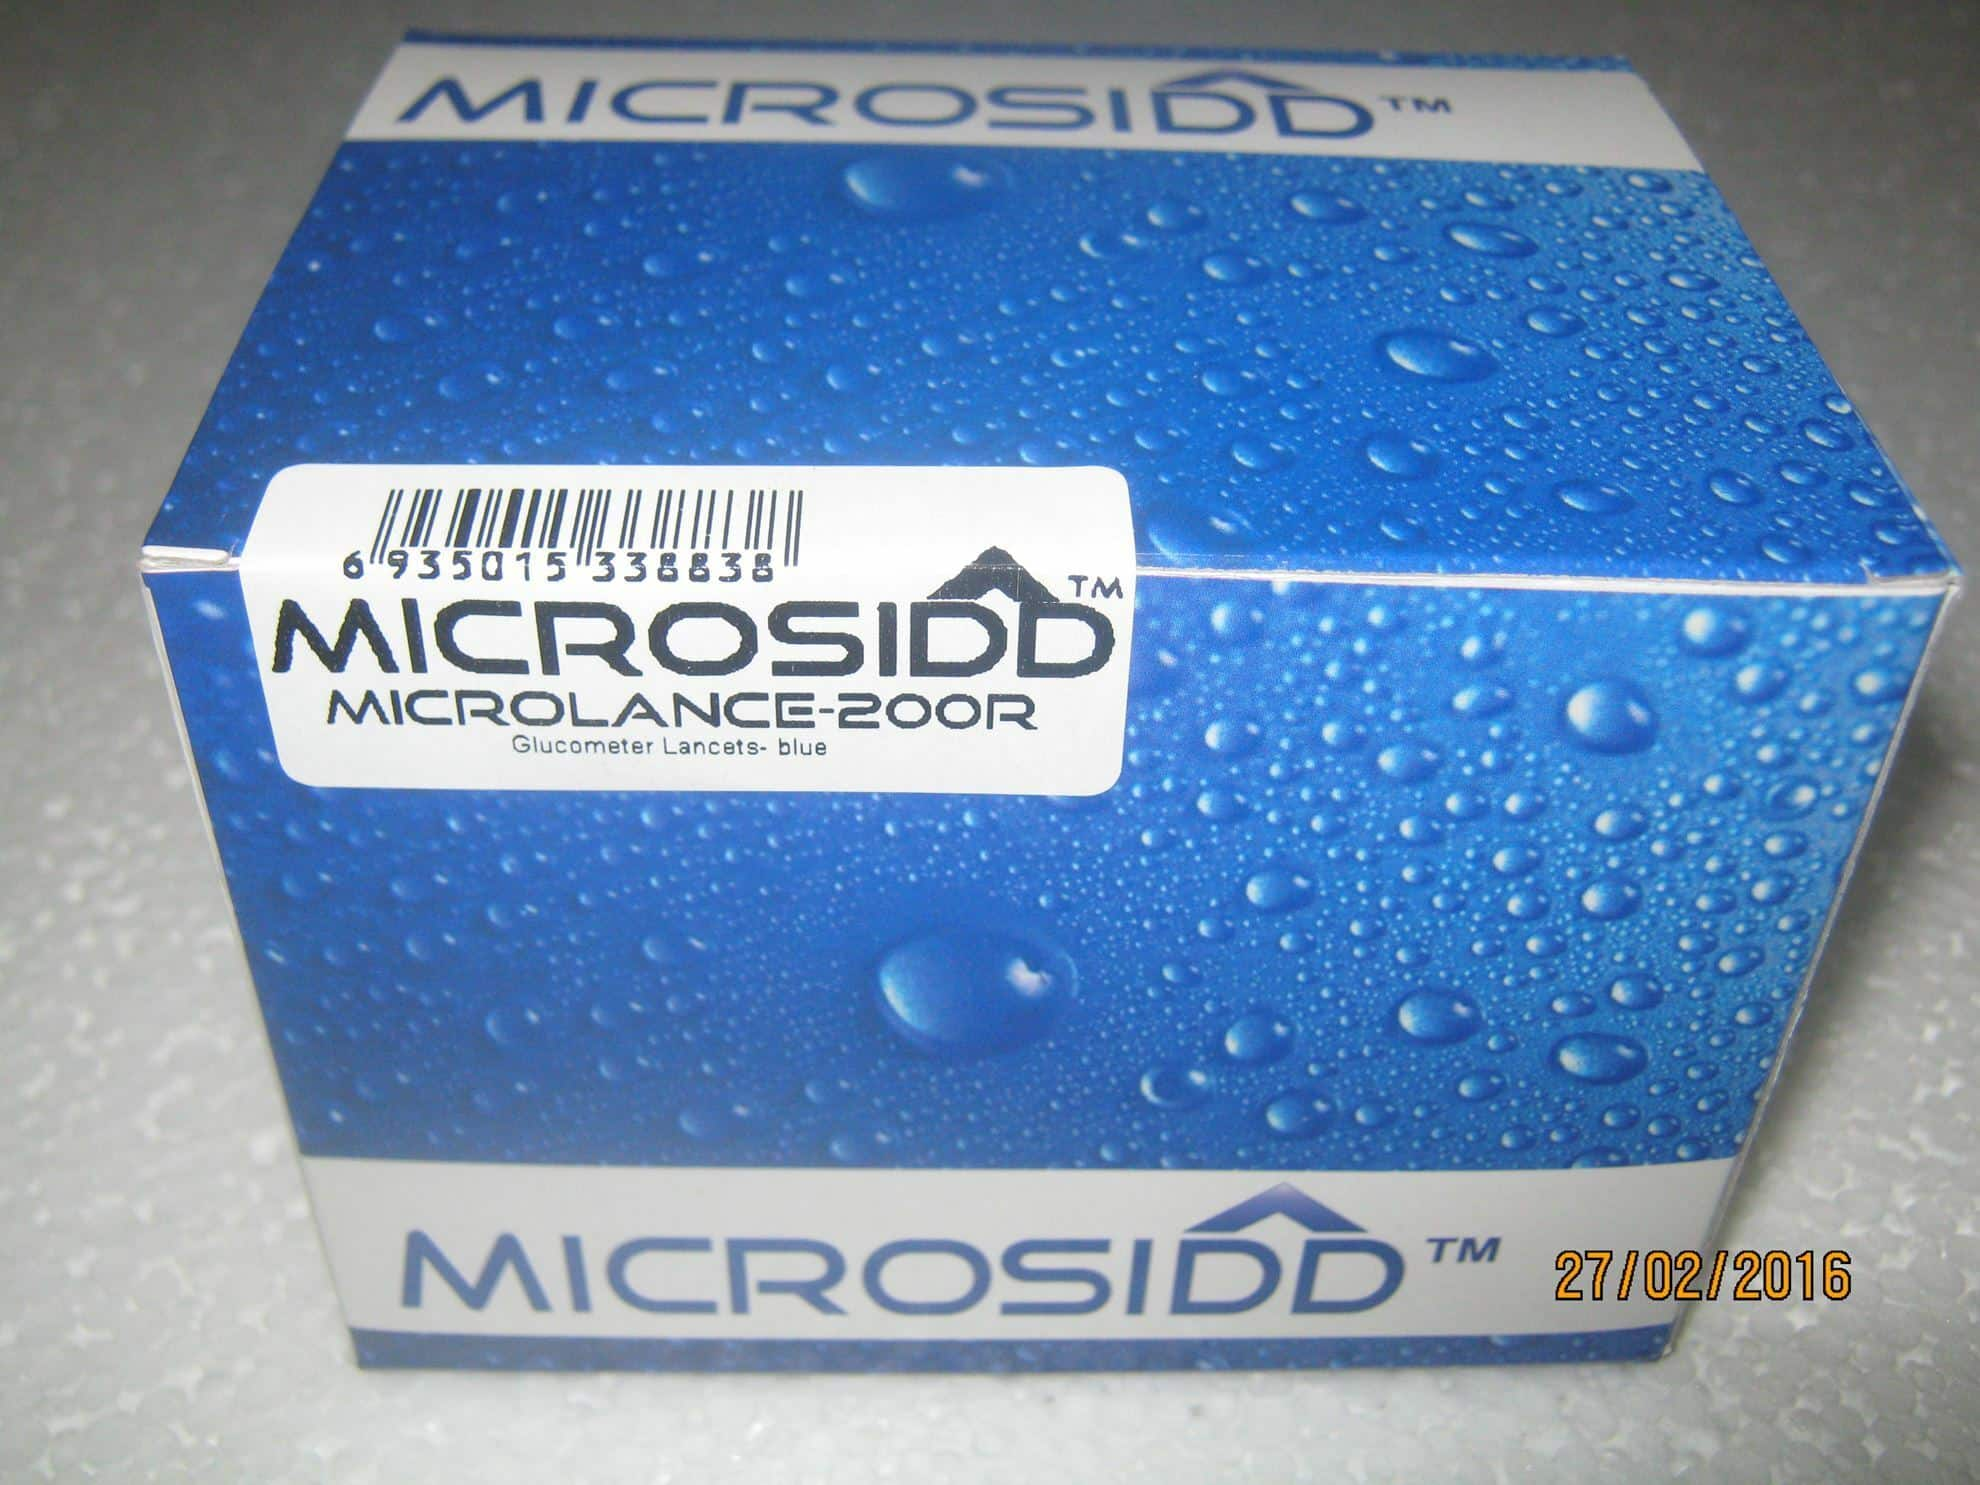 MICROLANCE-200R, Round blue glucometer lancets compatible with Oncall plus Dr Morepen Accusure Omron